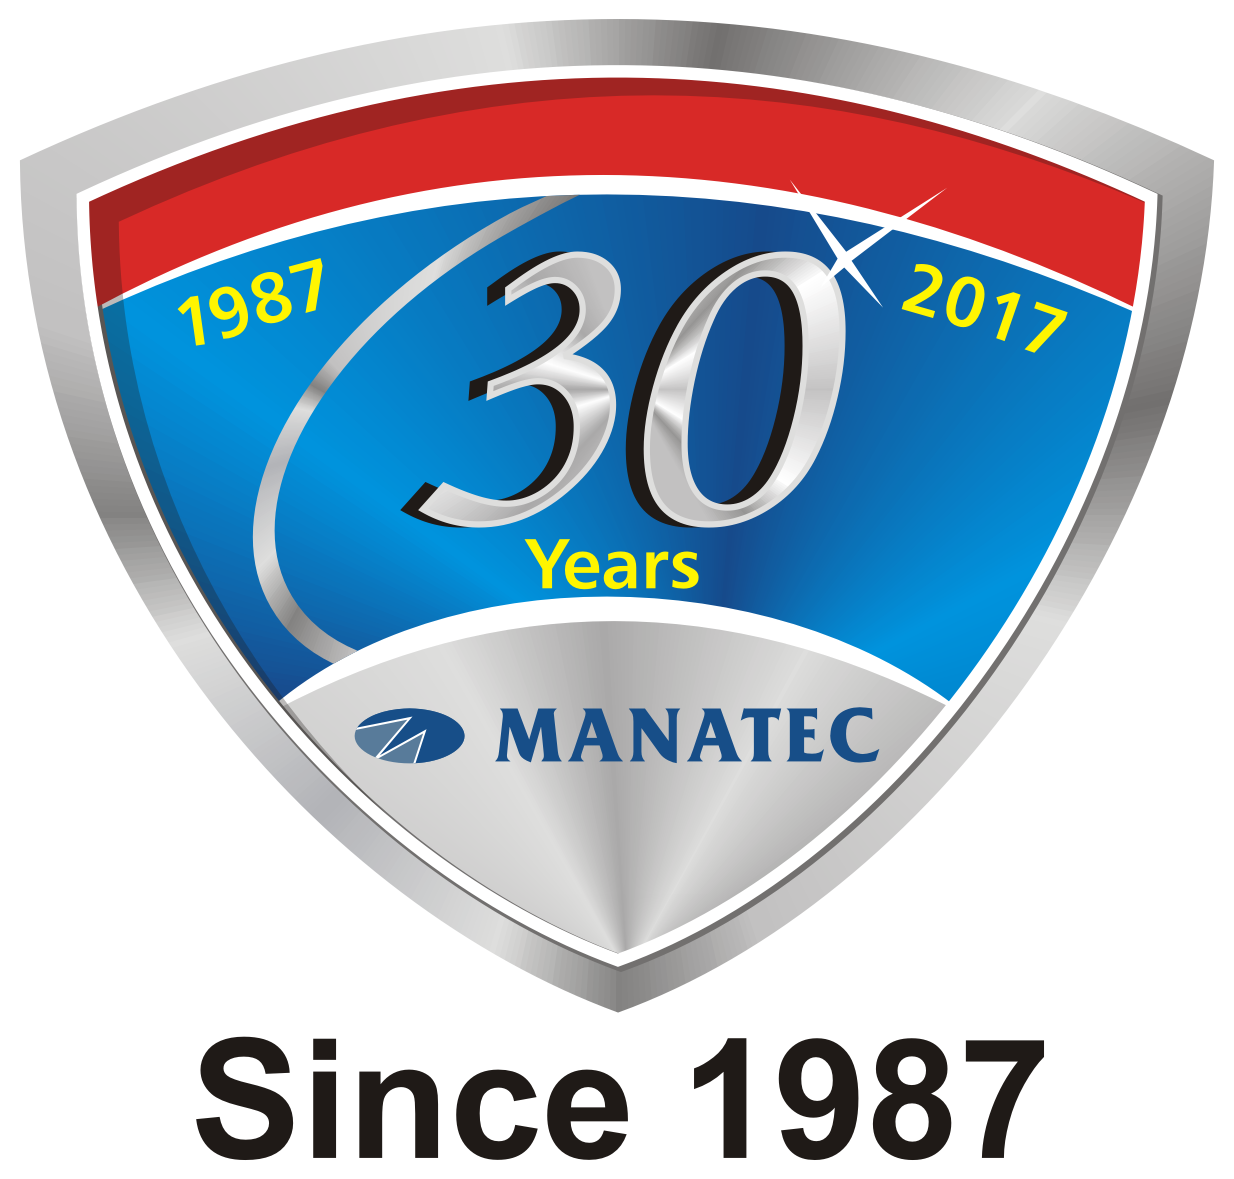 Manatec Electronics Pvt Ltd